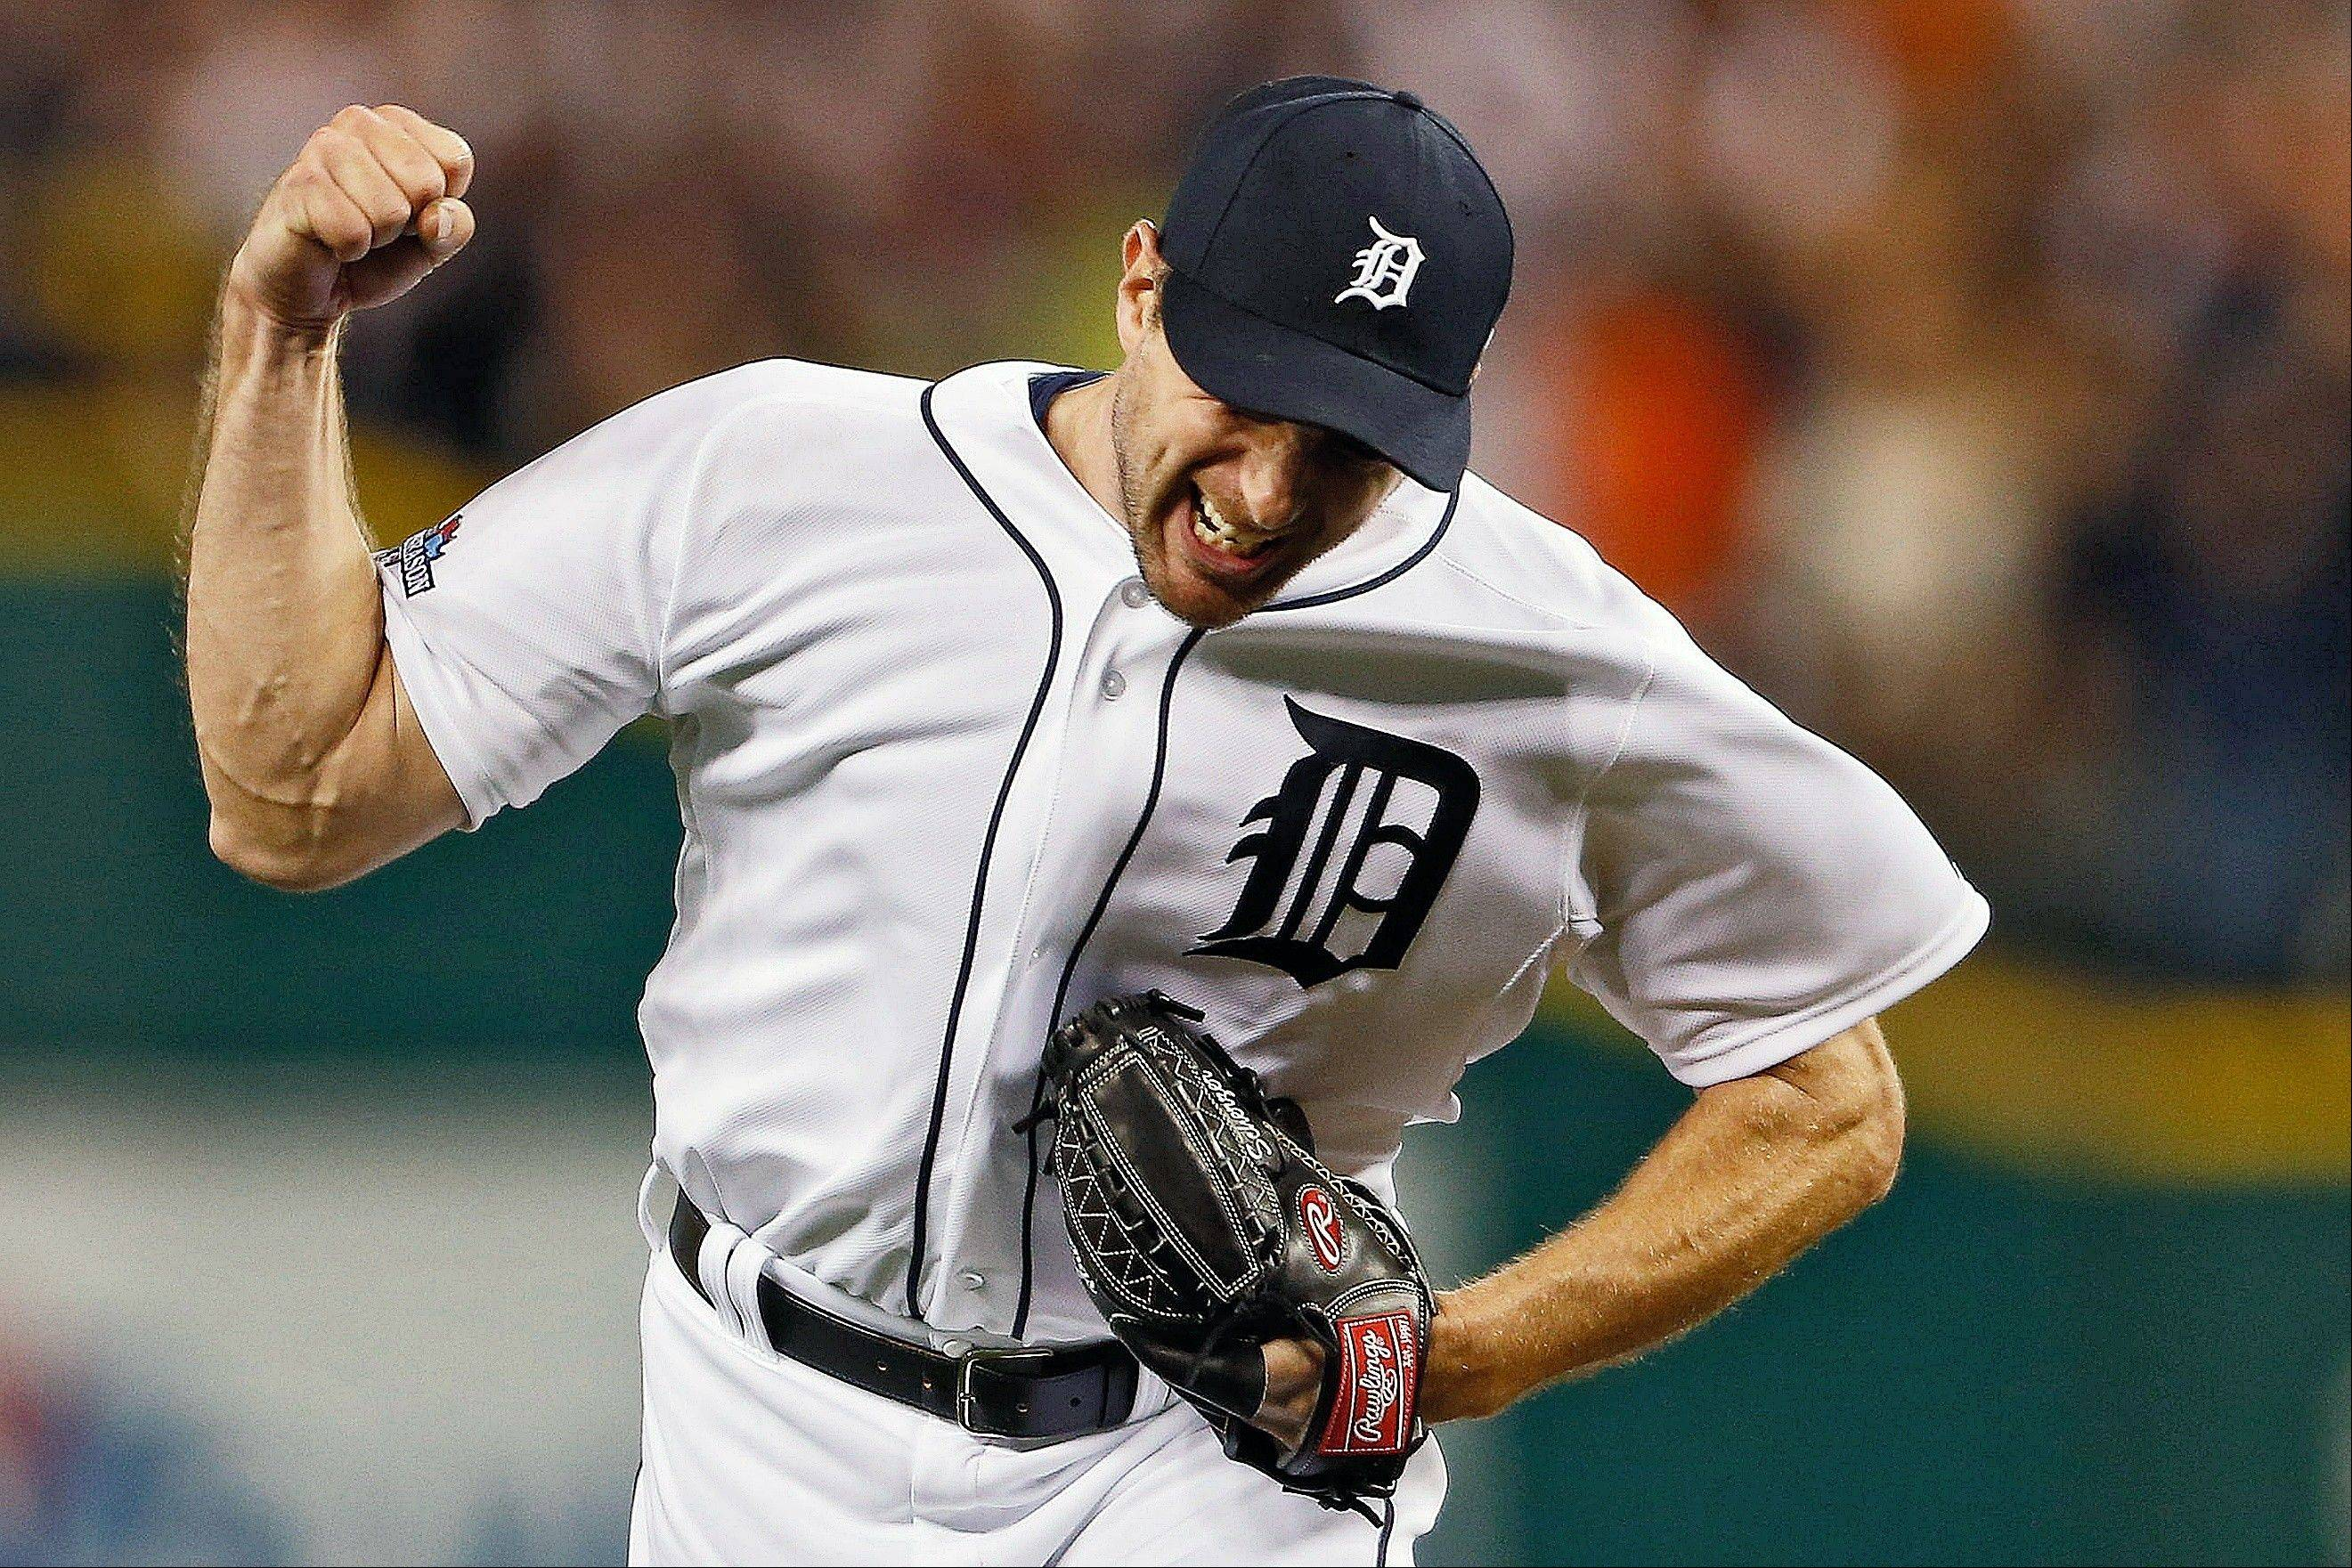 Tigers pitcher Max Scherzer celebrates after Oakland's Alberto Callaspo lined out to center for the last out of the eighth inning Tuesday in Game 4 of baseball's American League Division Series in Detroit.